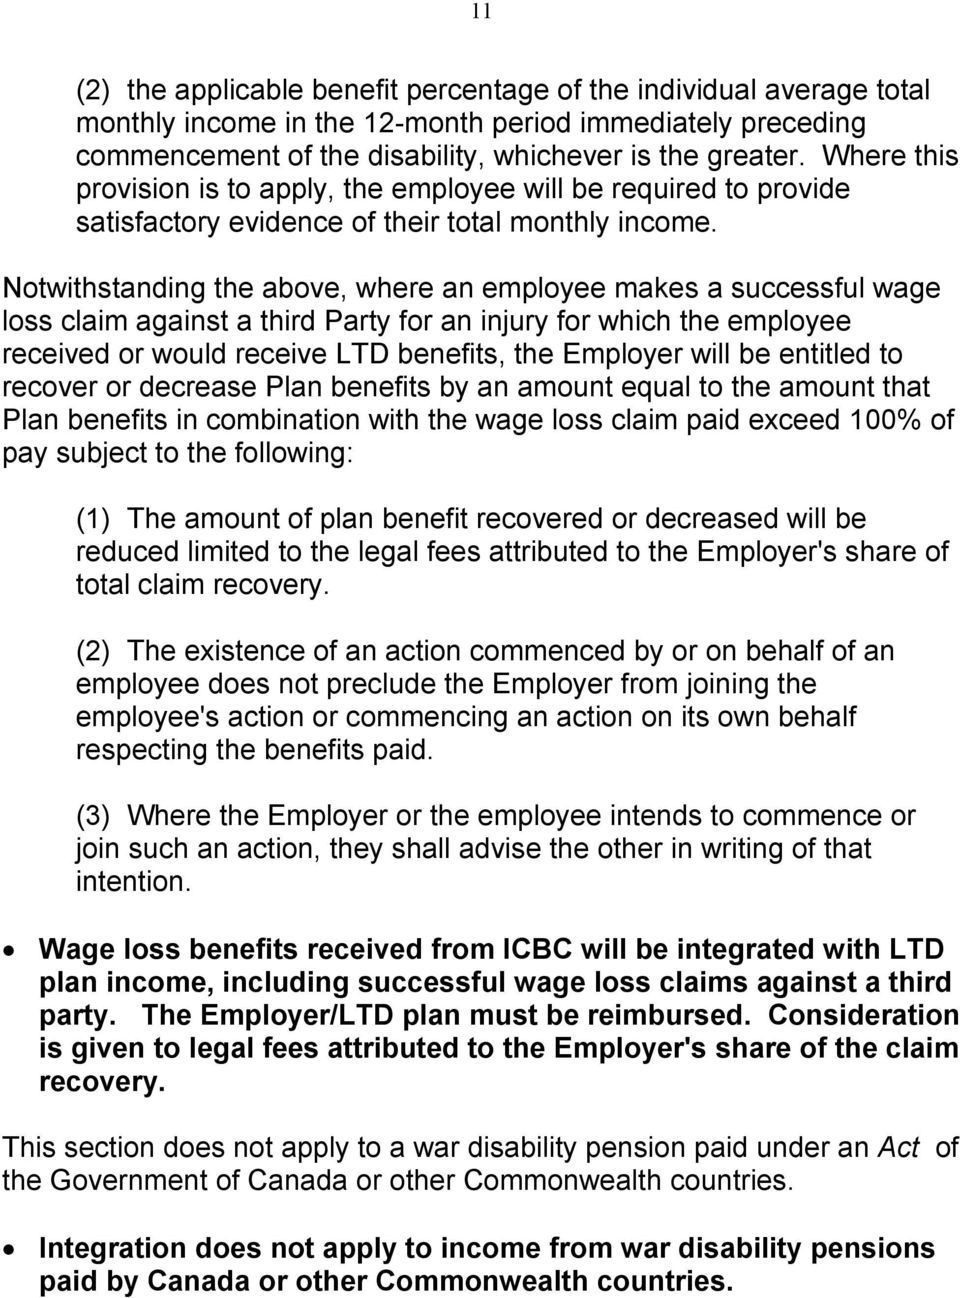 Notwithstanding the above, where an employee makes a successful wage loss claim against a third Party for an injury for which the employee received or would receive LTD benefits, the Employer will be